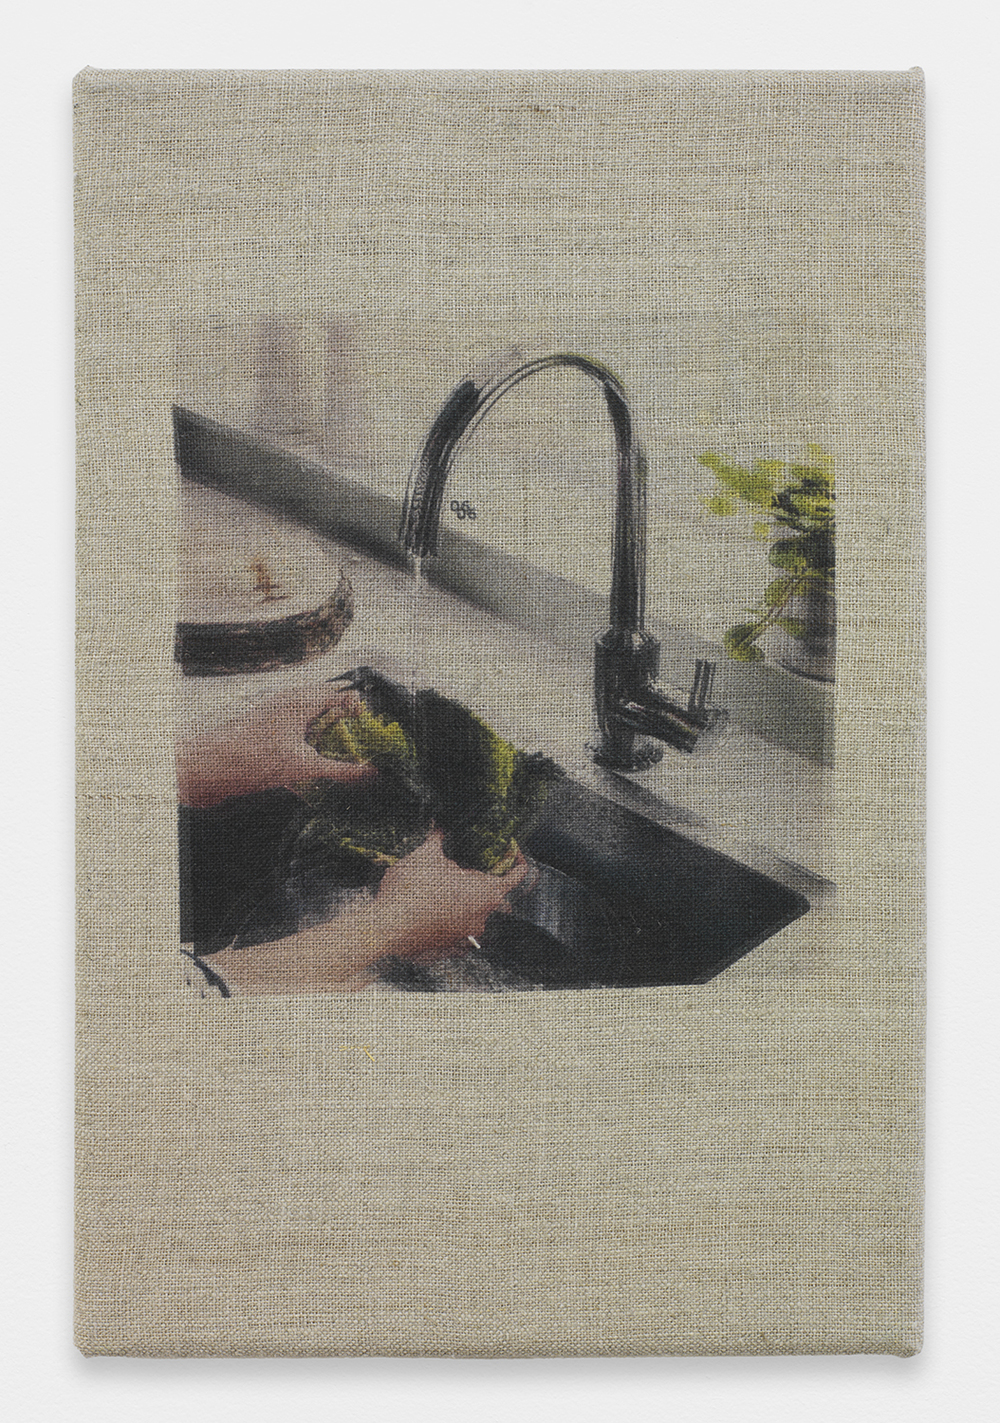 AUGUSTUS THOMPSON Ikea (Washing Lettuce), 2013 Inkjet on linen 12 x 8 inches